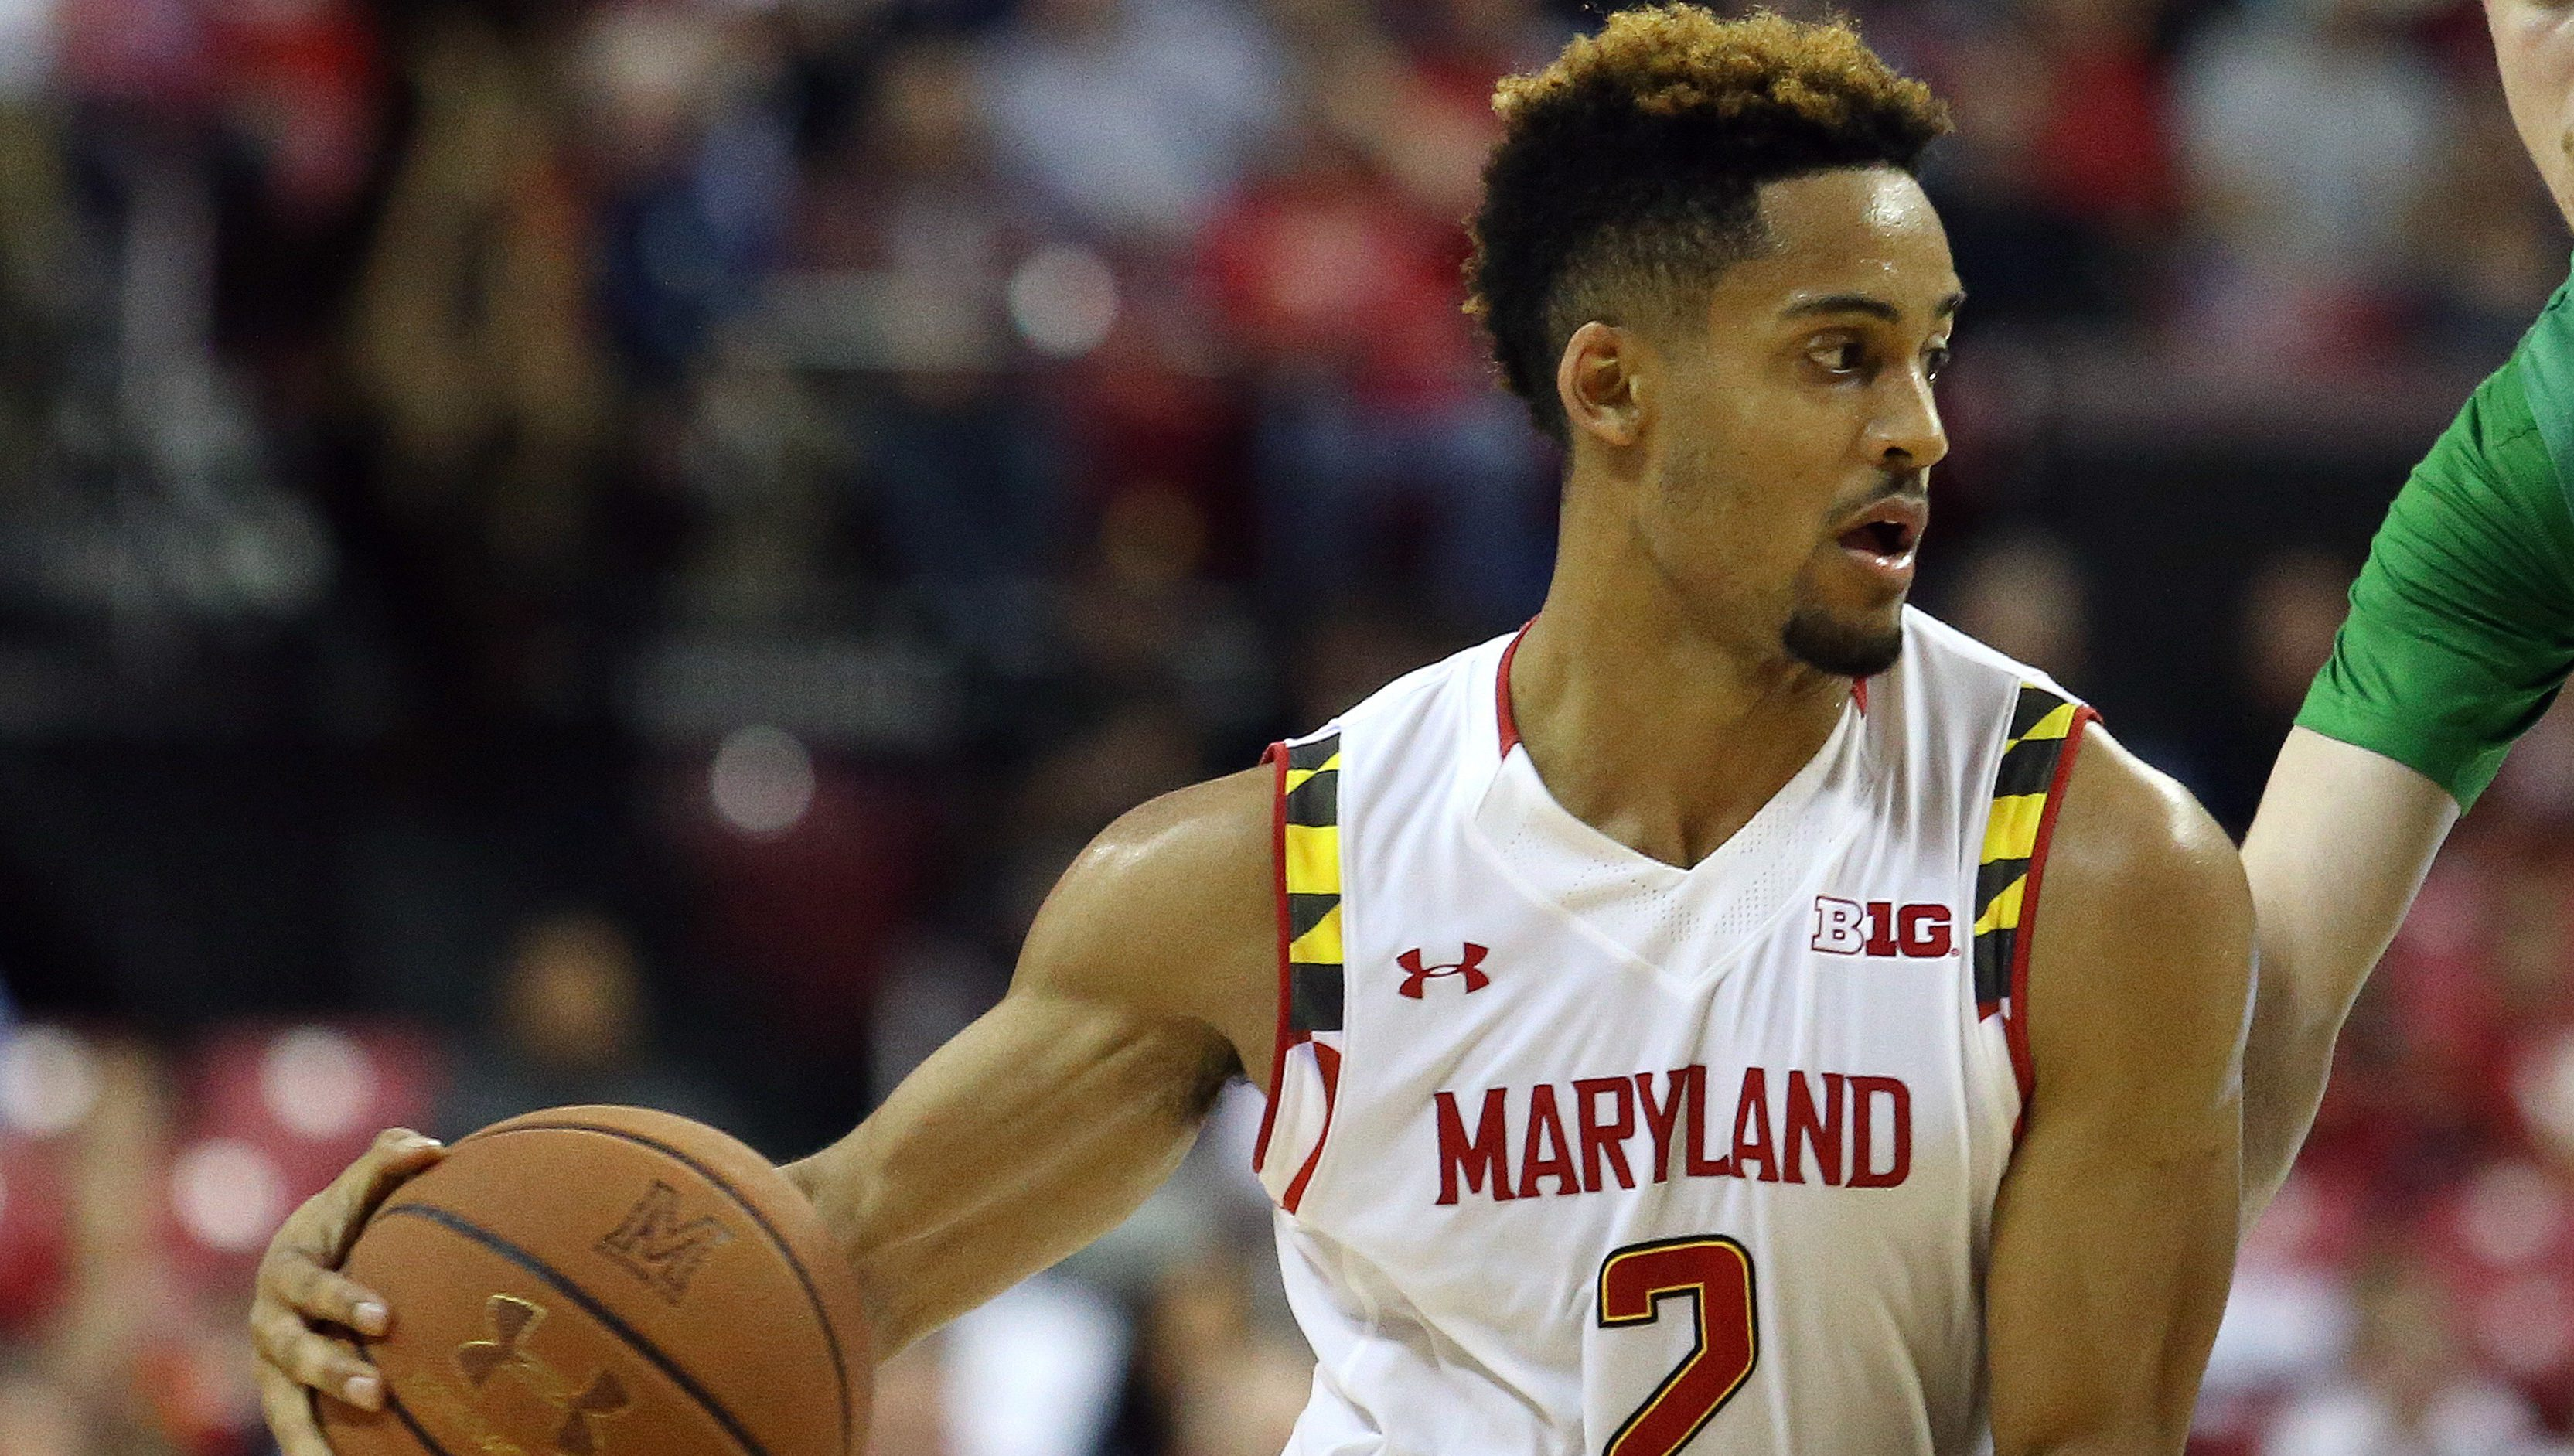 Maryland guard Melo Trimble (AP Photo/Matt Hazlett)